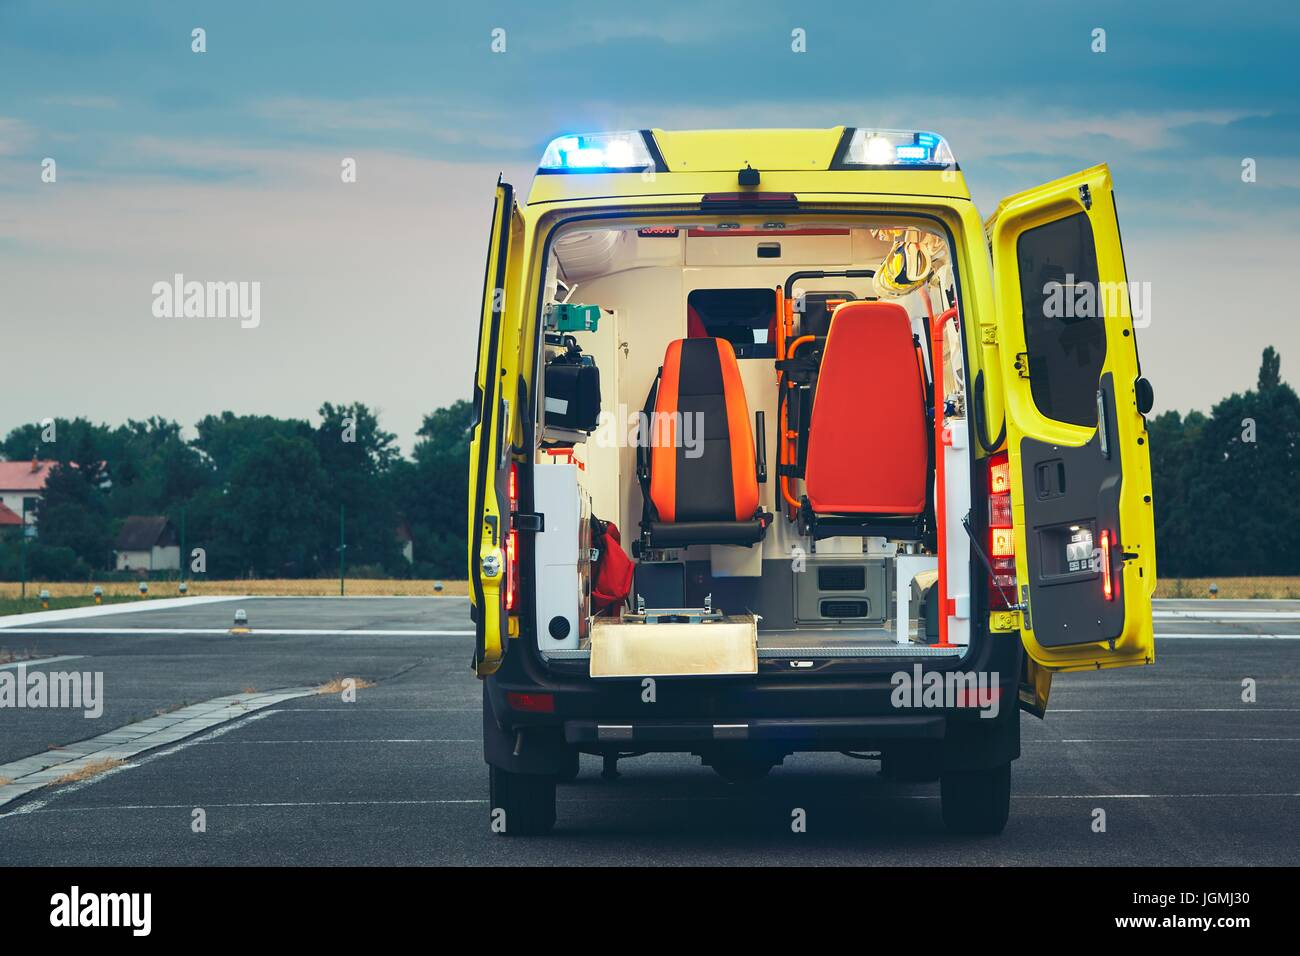 Ambulance car of the emergency medical service at night. - Stock Image